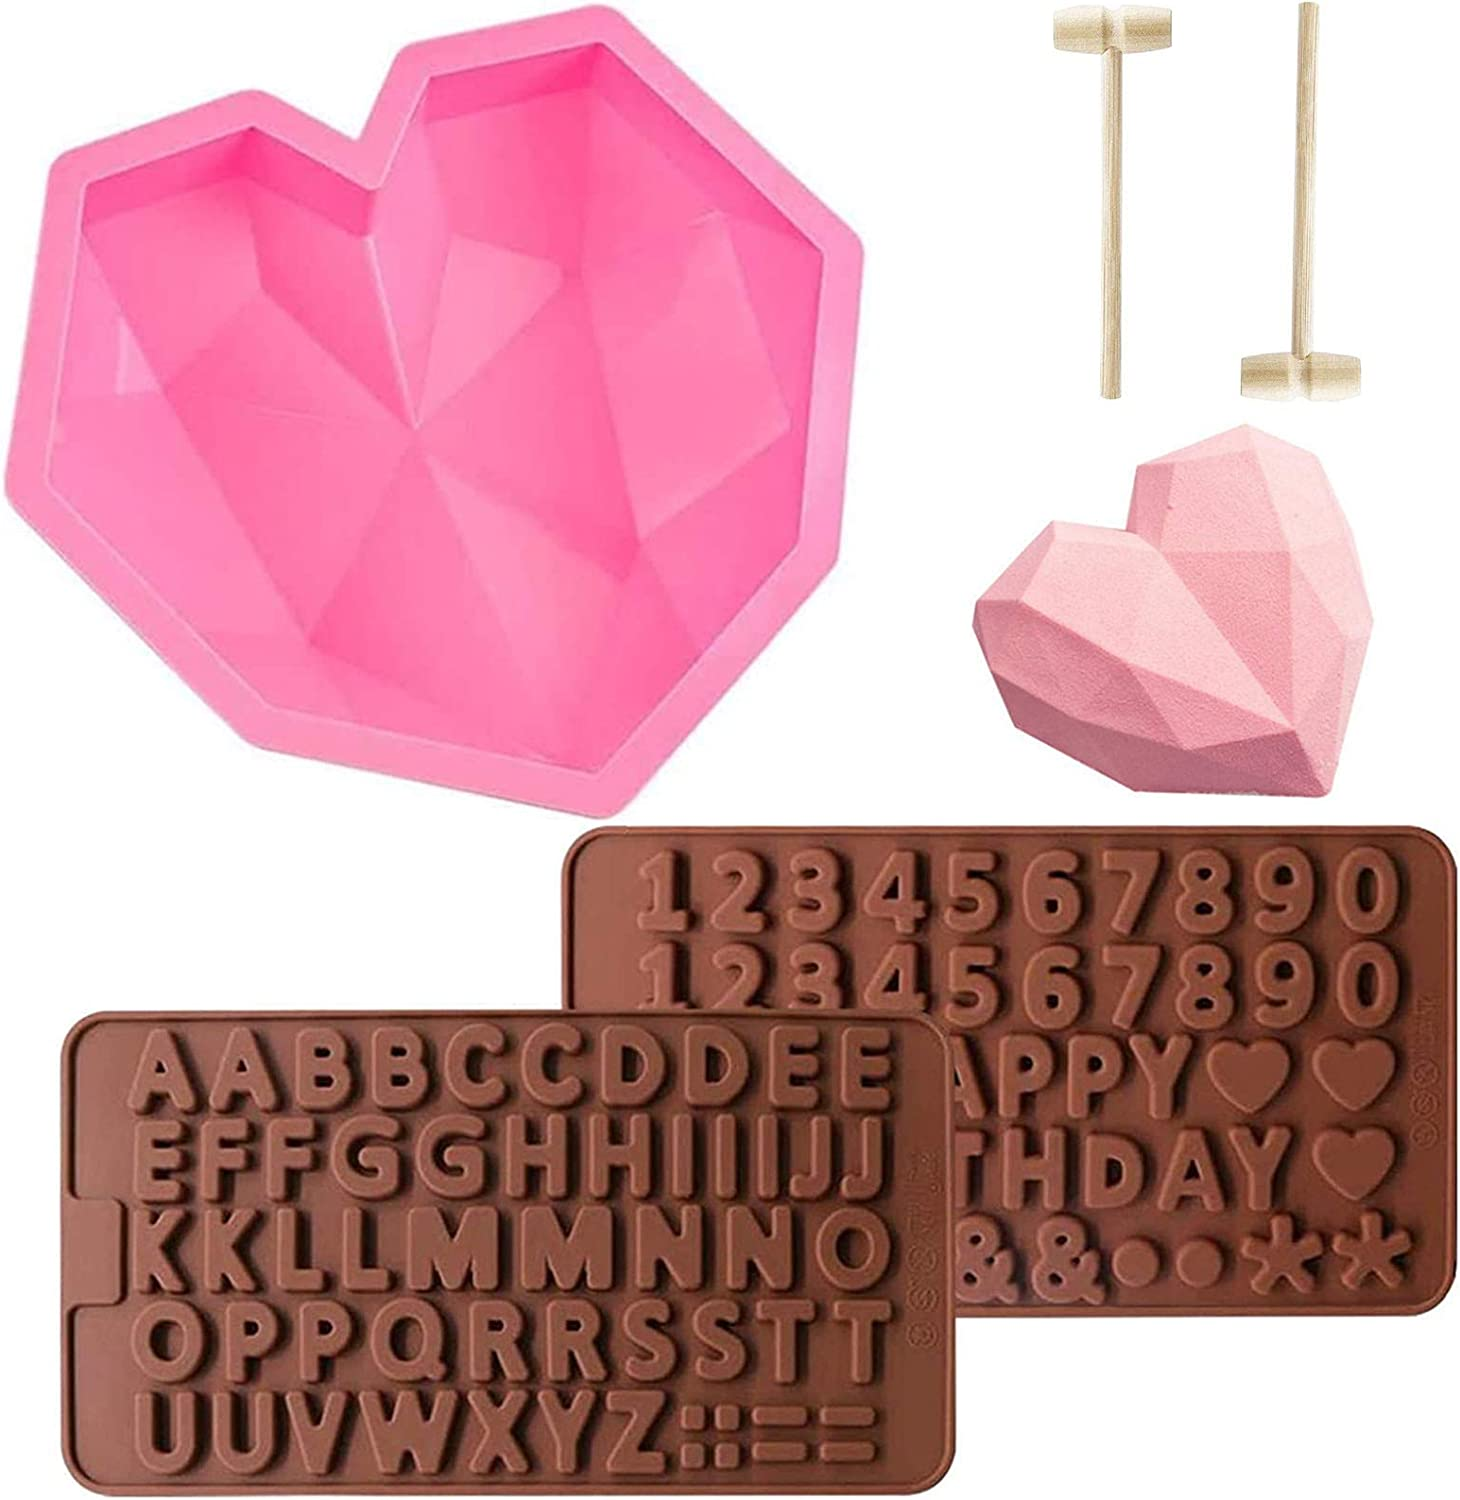 Diamond Heart Mousse Cake Mold Trays 8.7 Inch Silicone Baking Pan Oven Safe Not Sticky Mould, Wooden Hammers Mallet Pounding Tool and Chocolate Molds for Valentine Candy Chocolate Making (Pink)